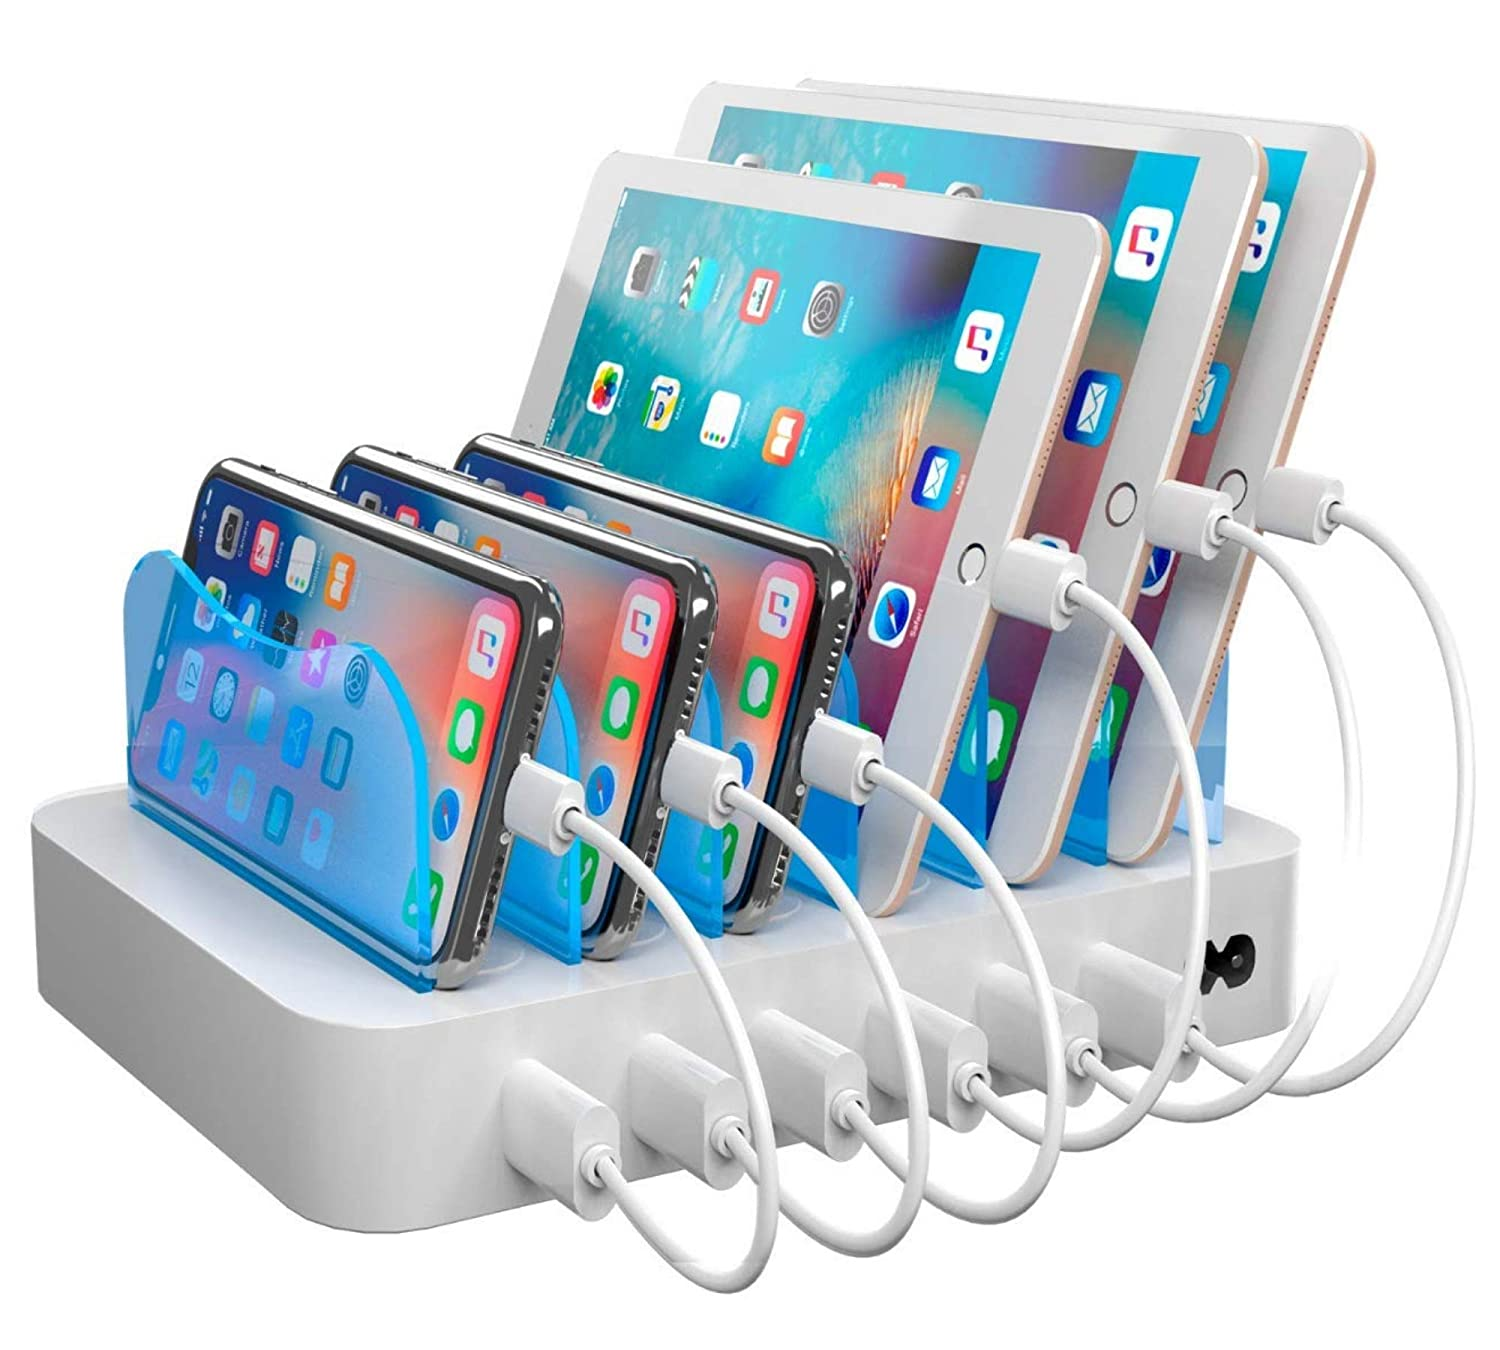 Hercules Tuff Charging Station for Multiple Devices, 6 USB Ports, Short Cables Included, White